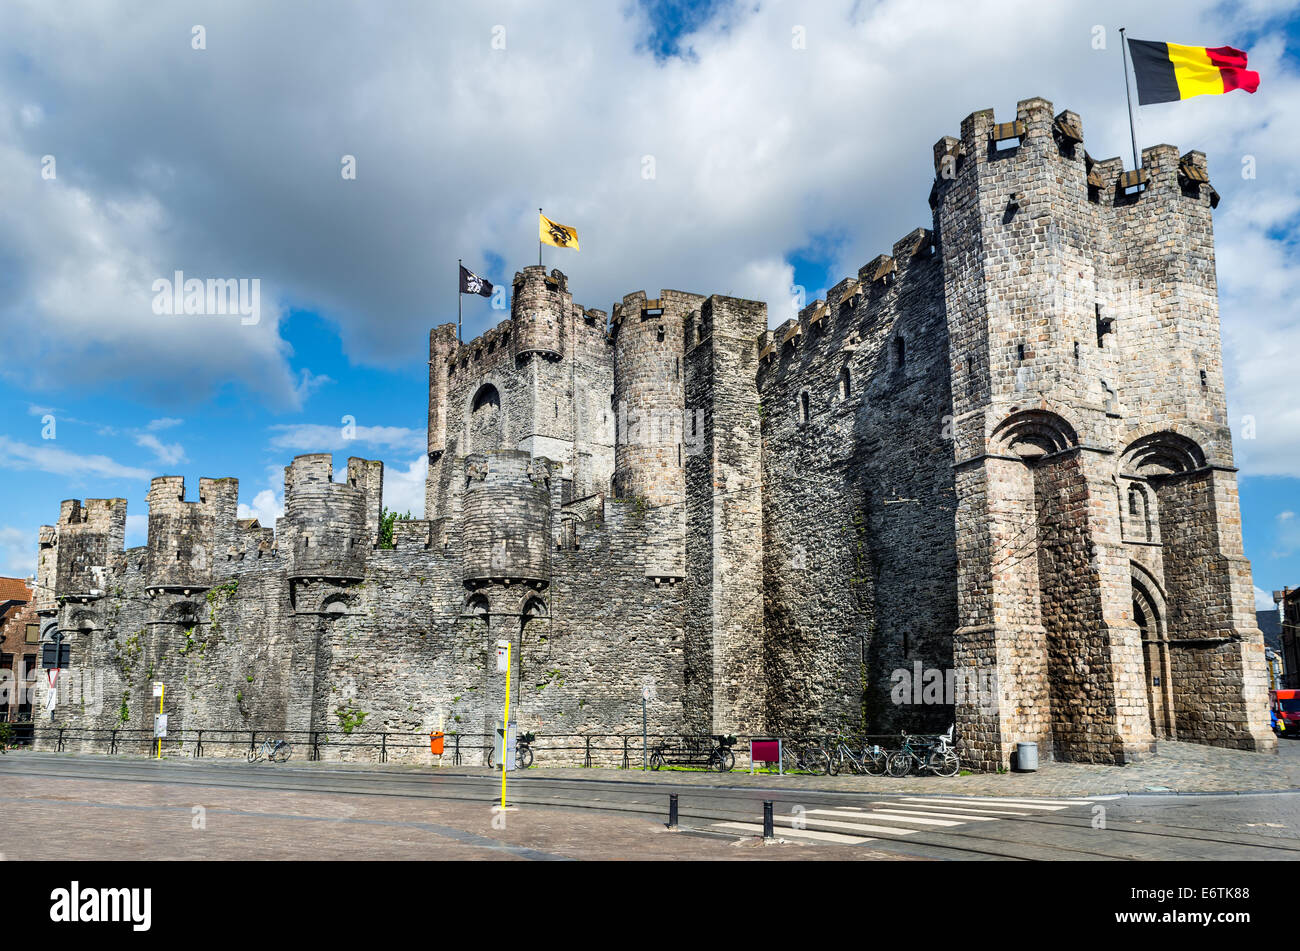 Gravensteen is a castle in Gent, Ghent built in 1180 Middle Ages, bought in 1185 by city - Stock Image